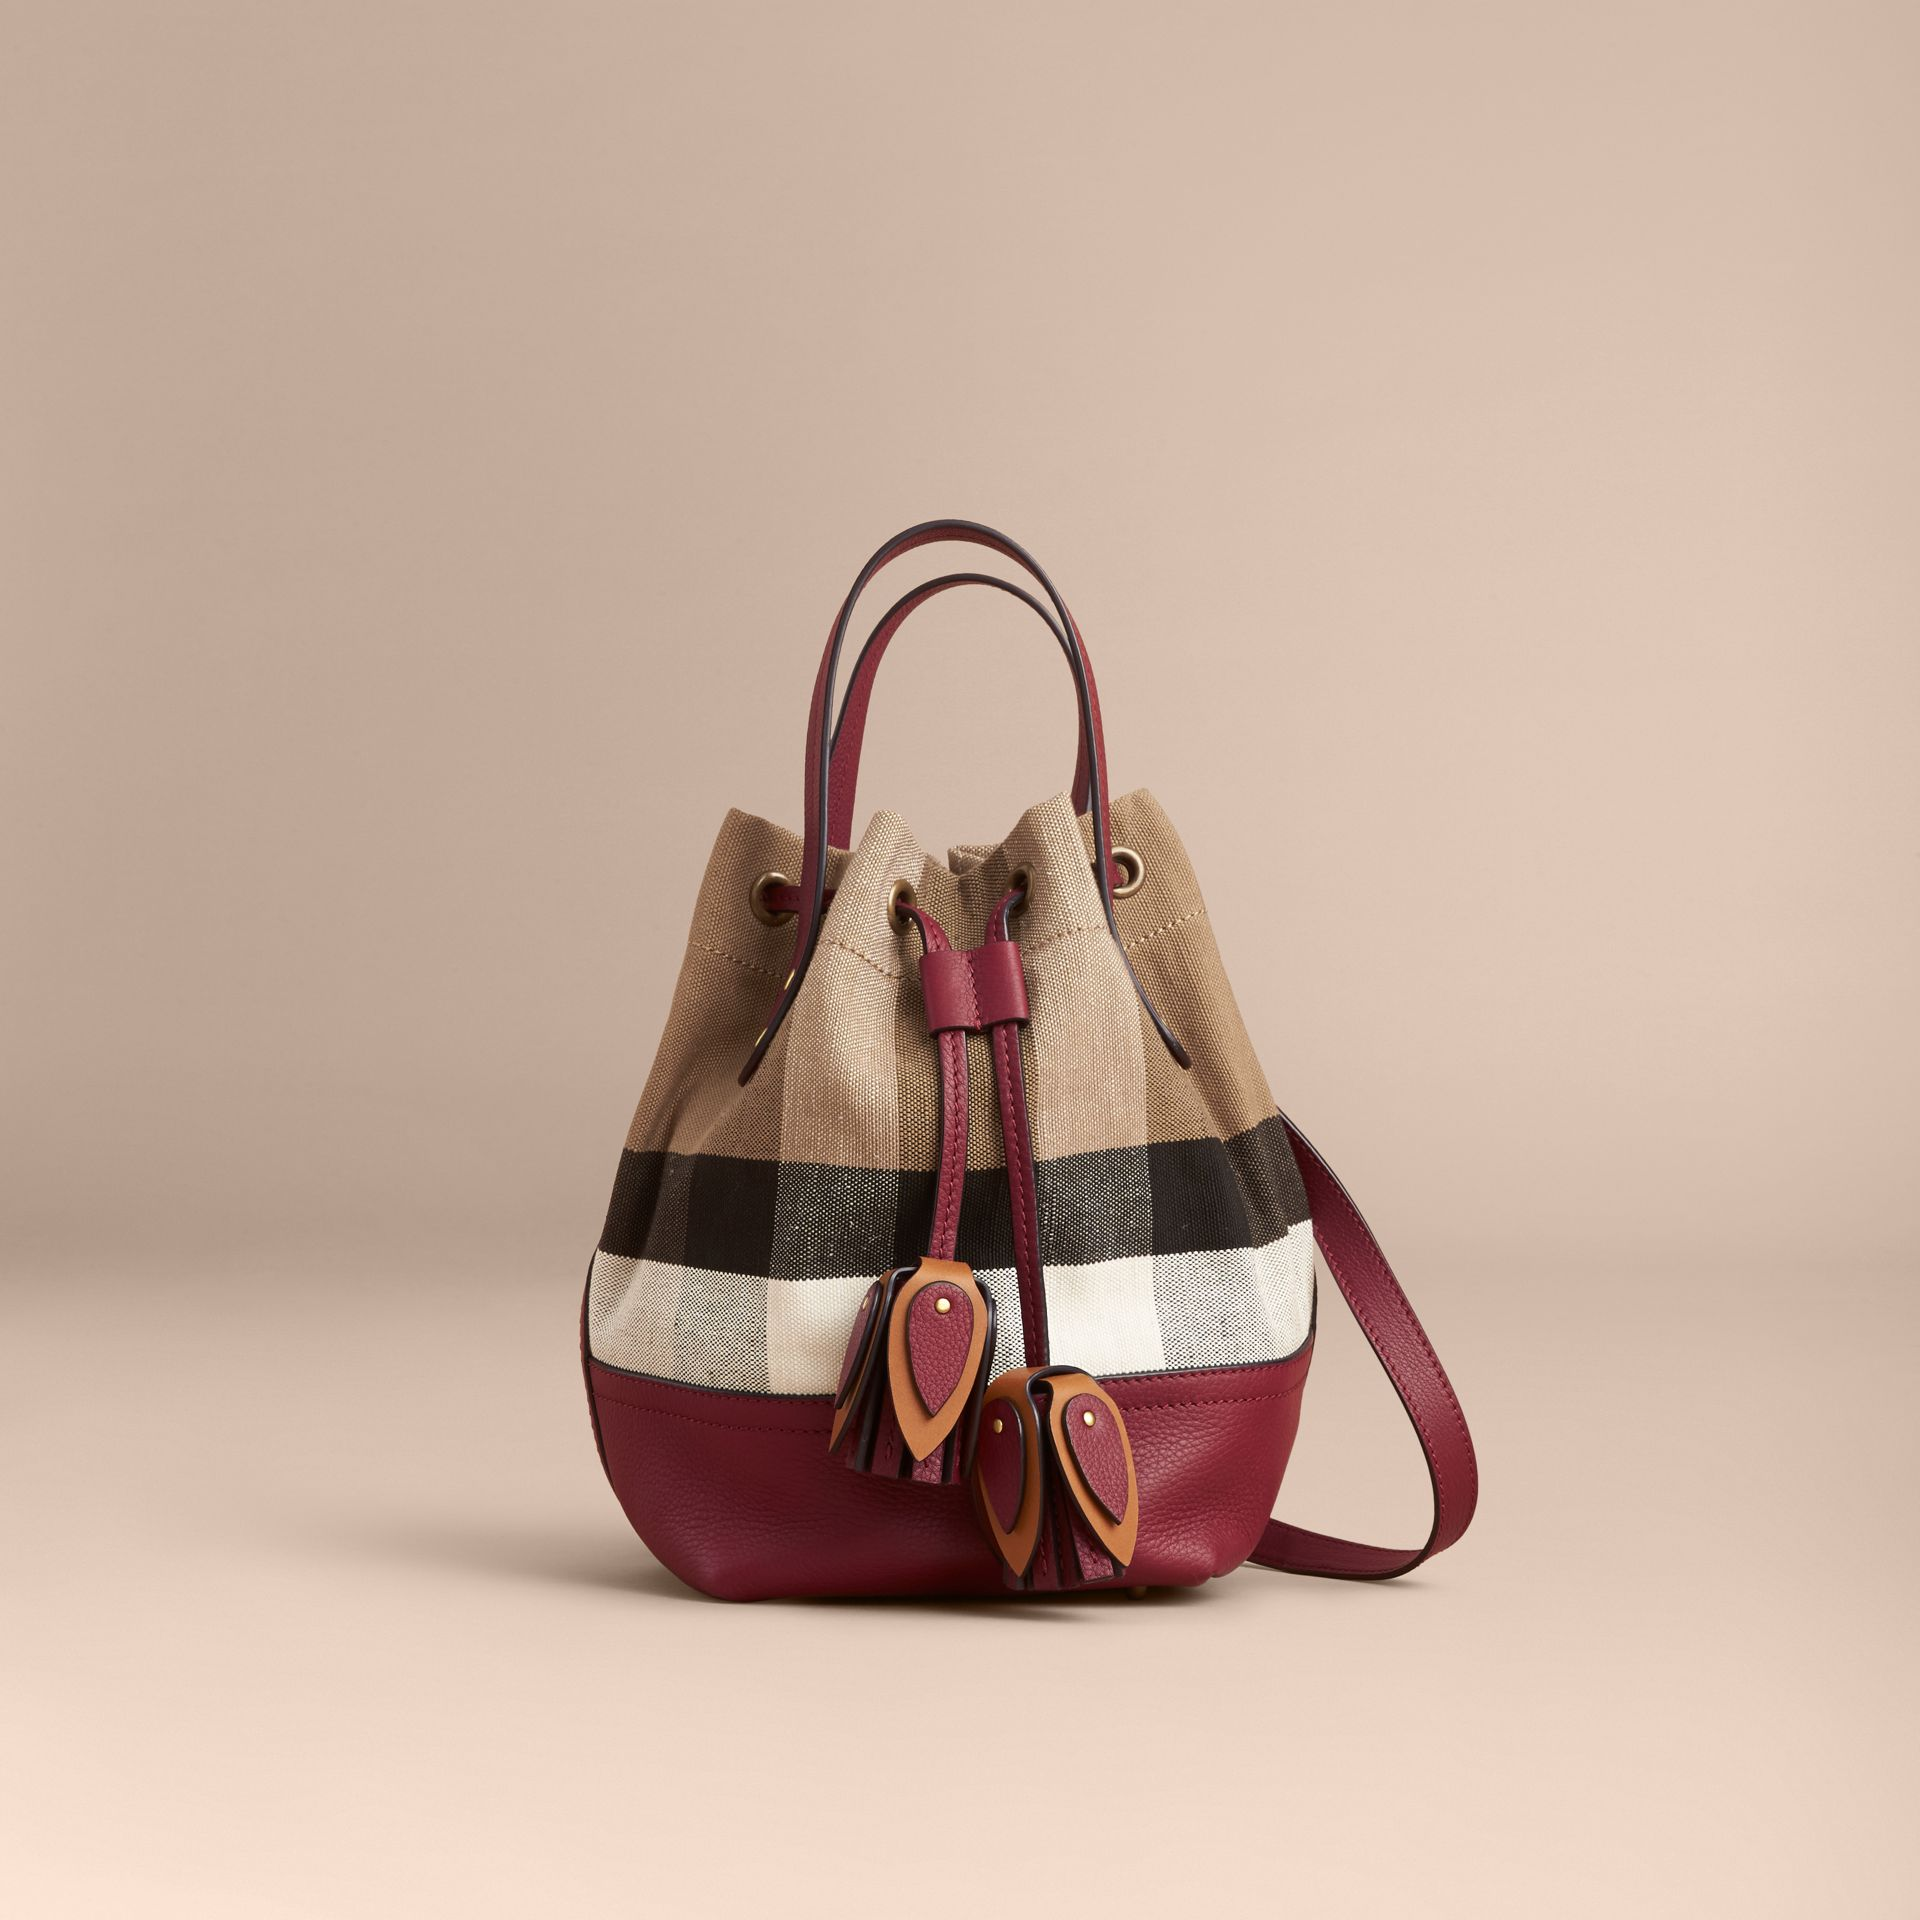 Small Canvas Check and Leather Bucket Bag in Burgundy Red - Women | Burberry - gallery image 8